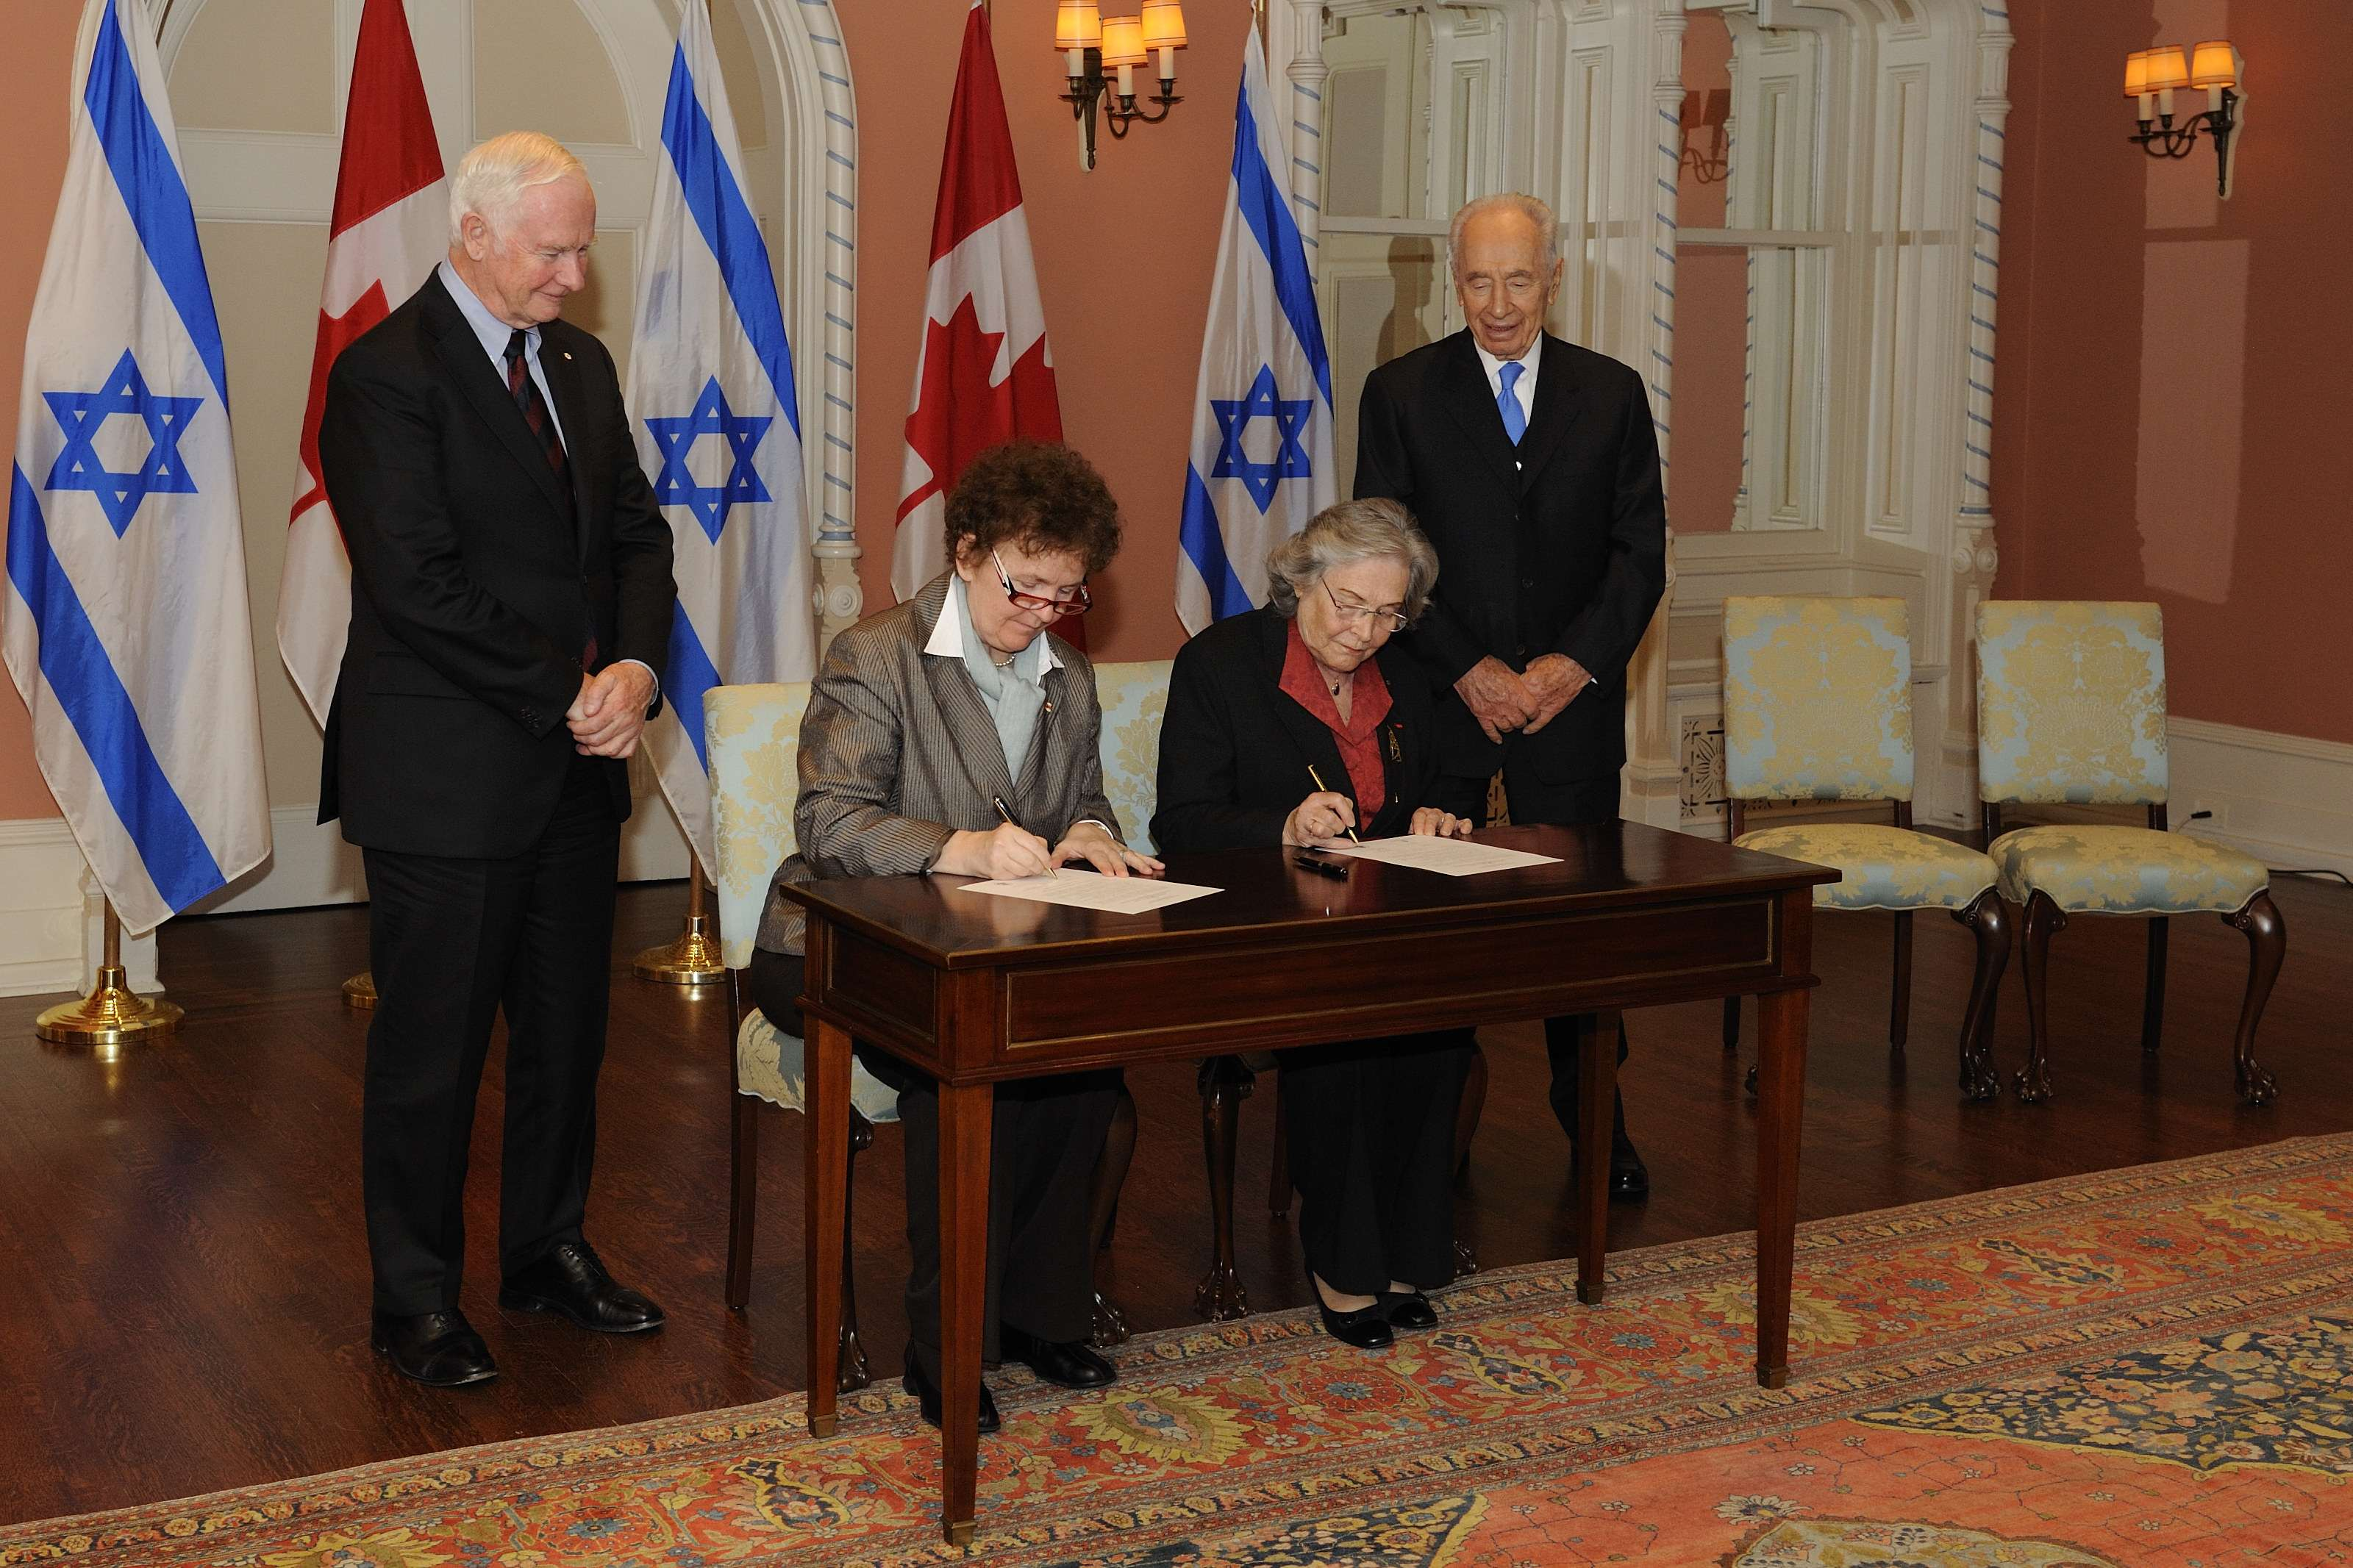 The Governor General and the President witnessed the signature of a Memorandum of Understanding between the Royal Society of Canada and the Israel Academy of Sciences and Humanities.